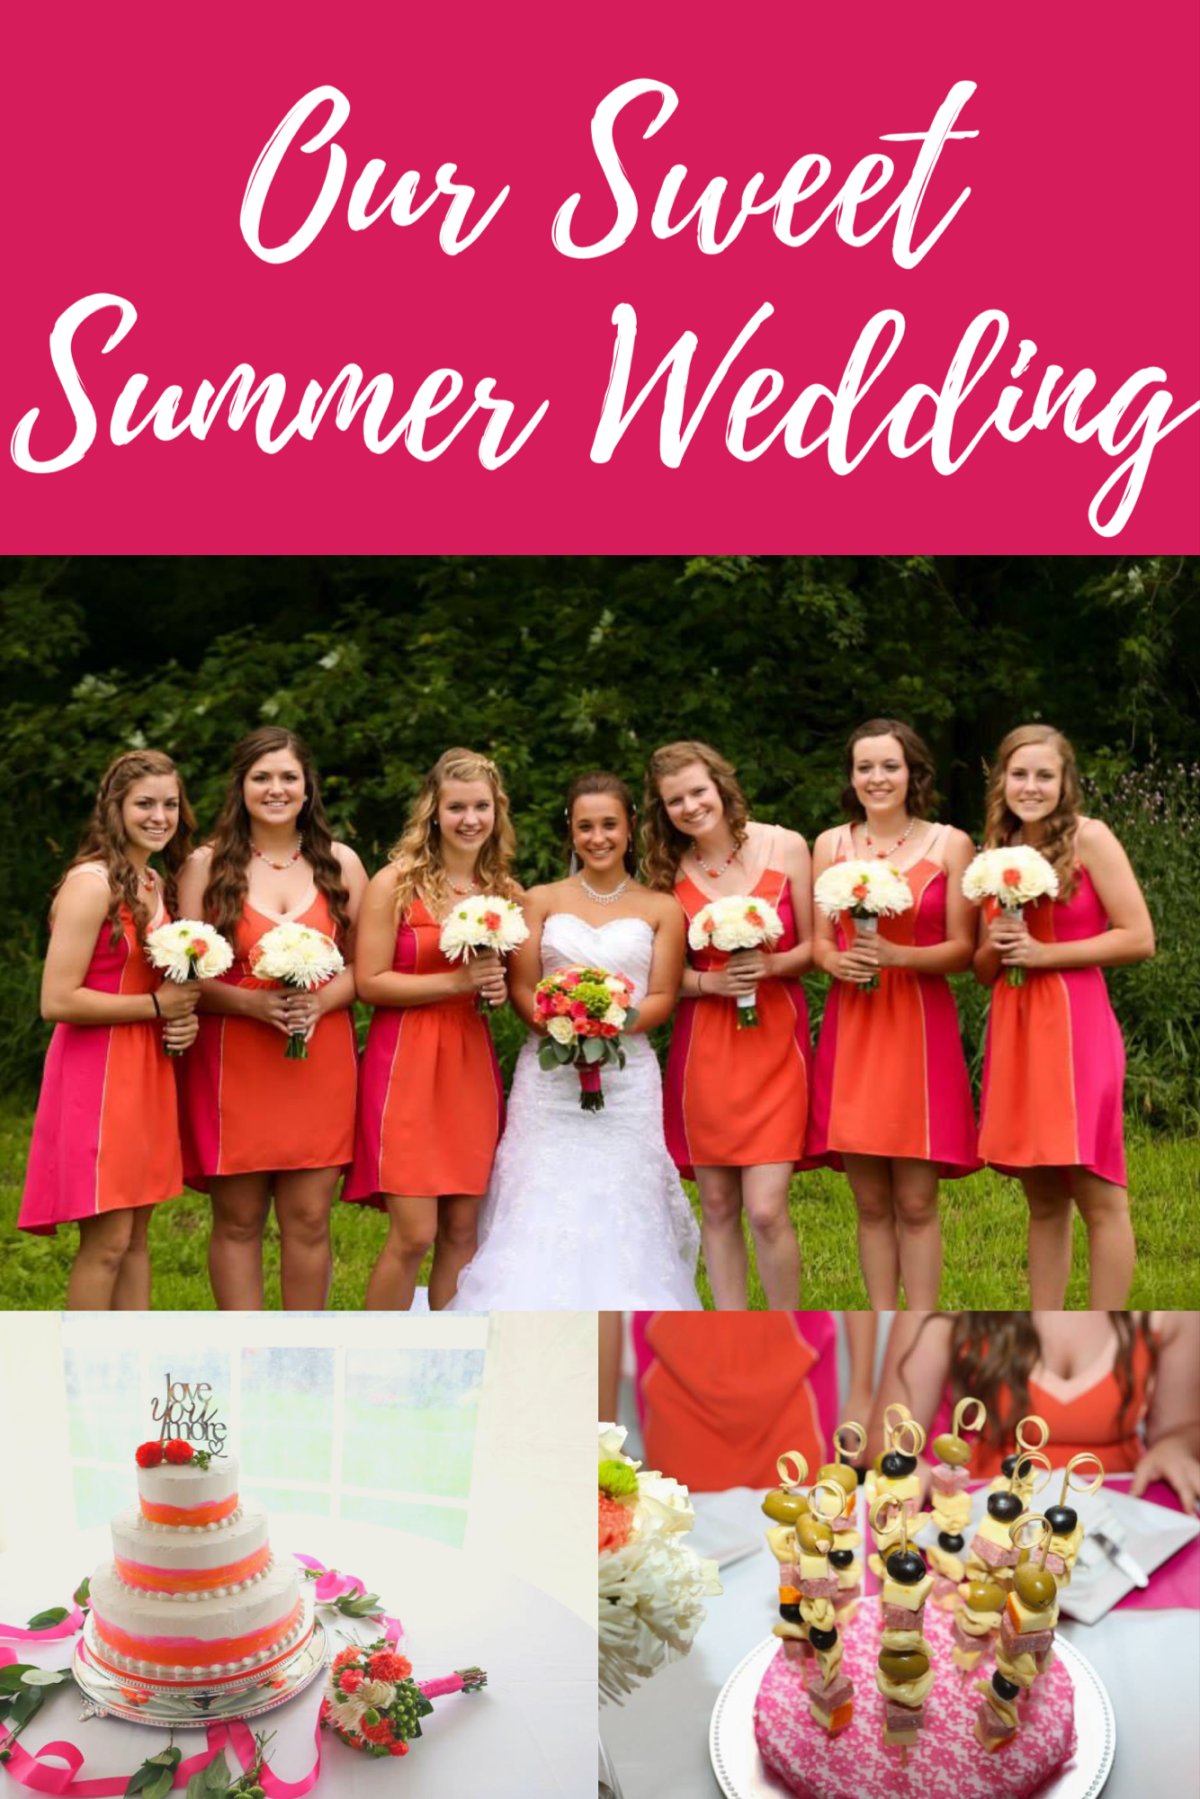 Our Sweet Summer Wedding